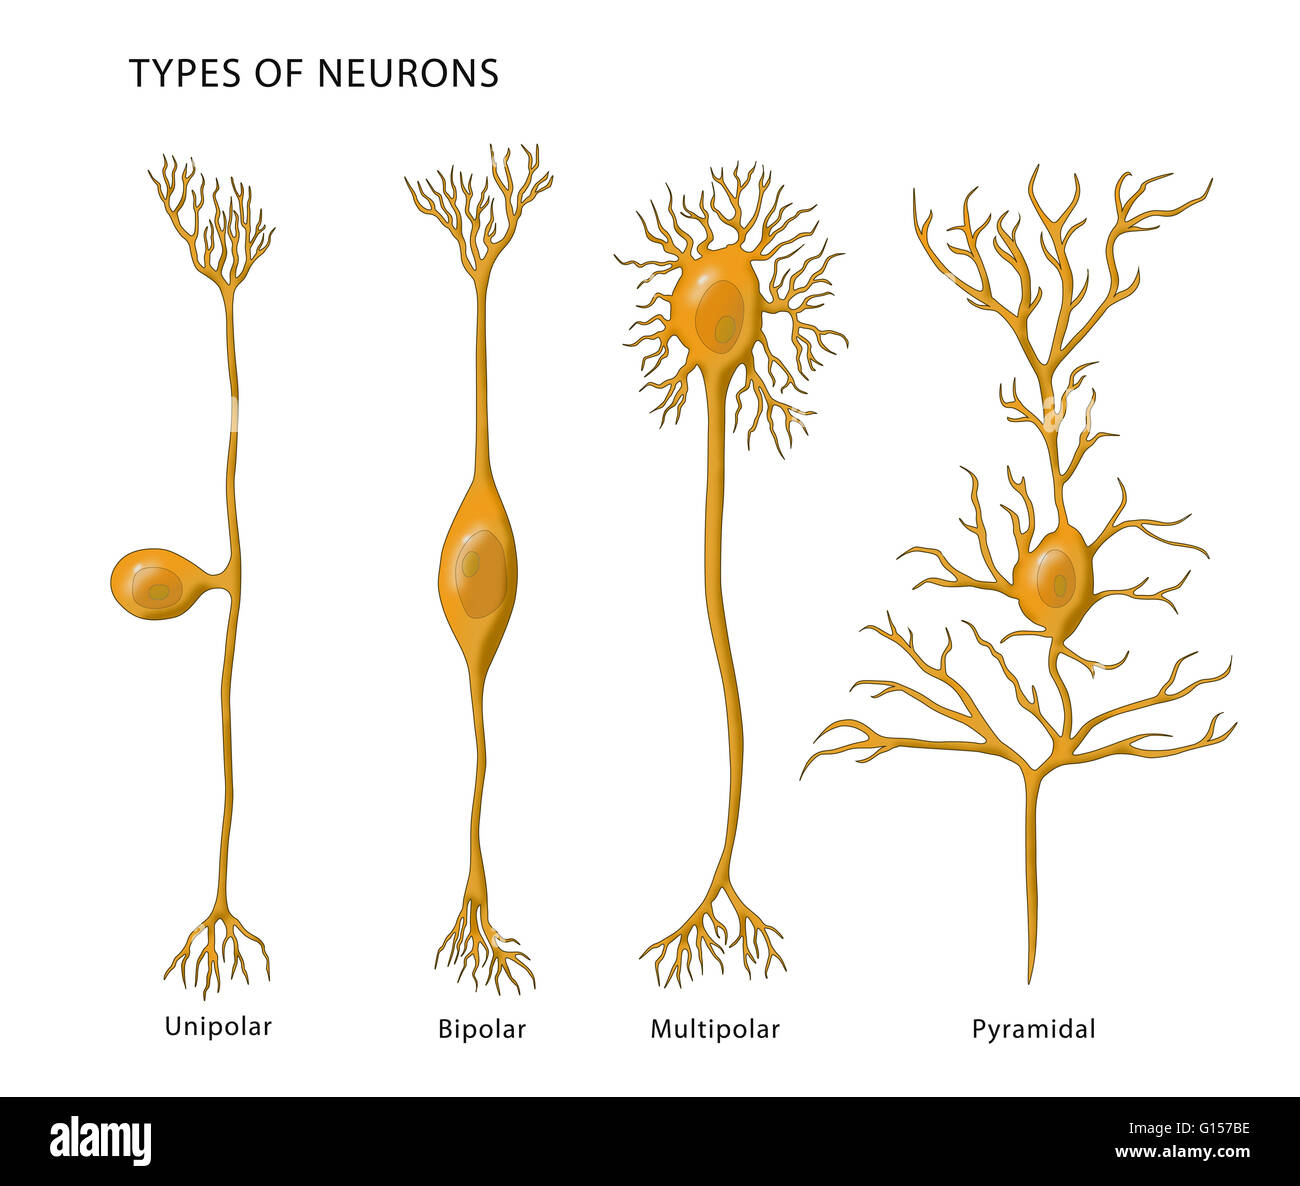 Illustration Showing The 4 Types Of Neurons From Left To